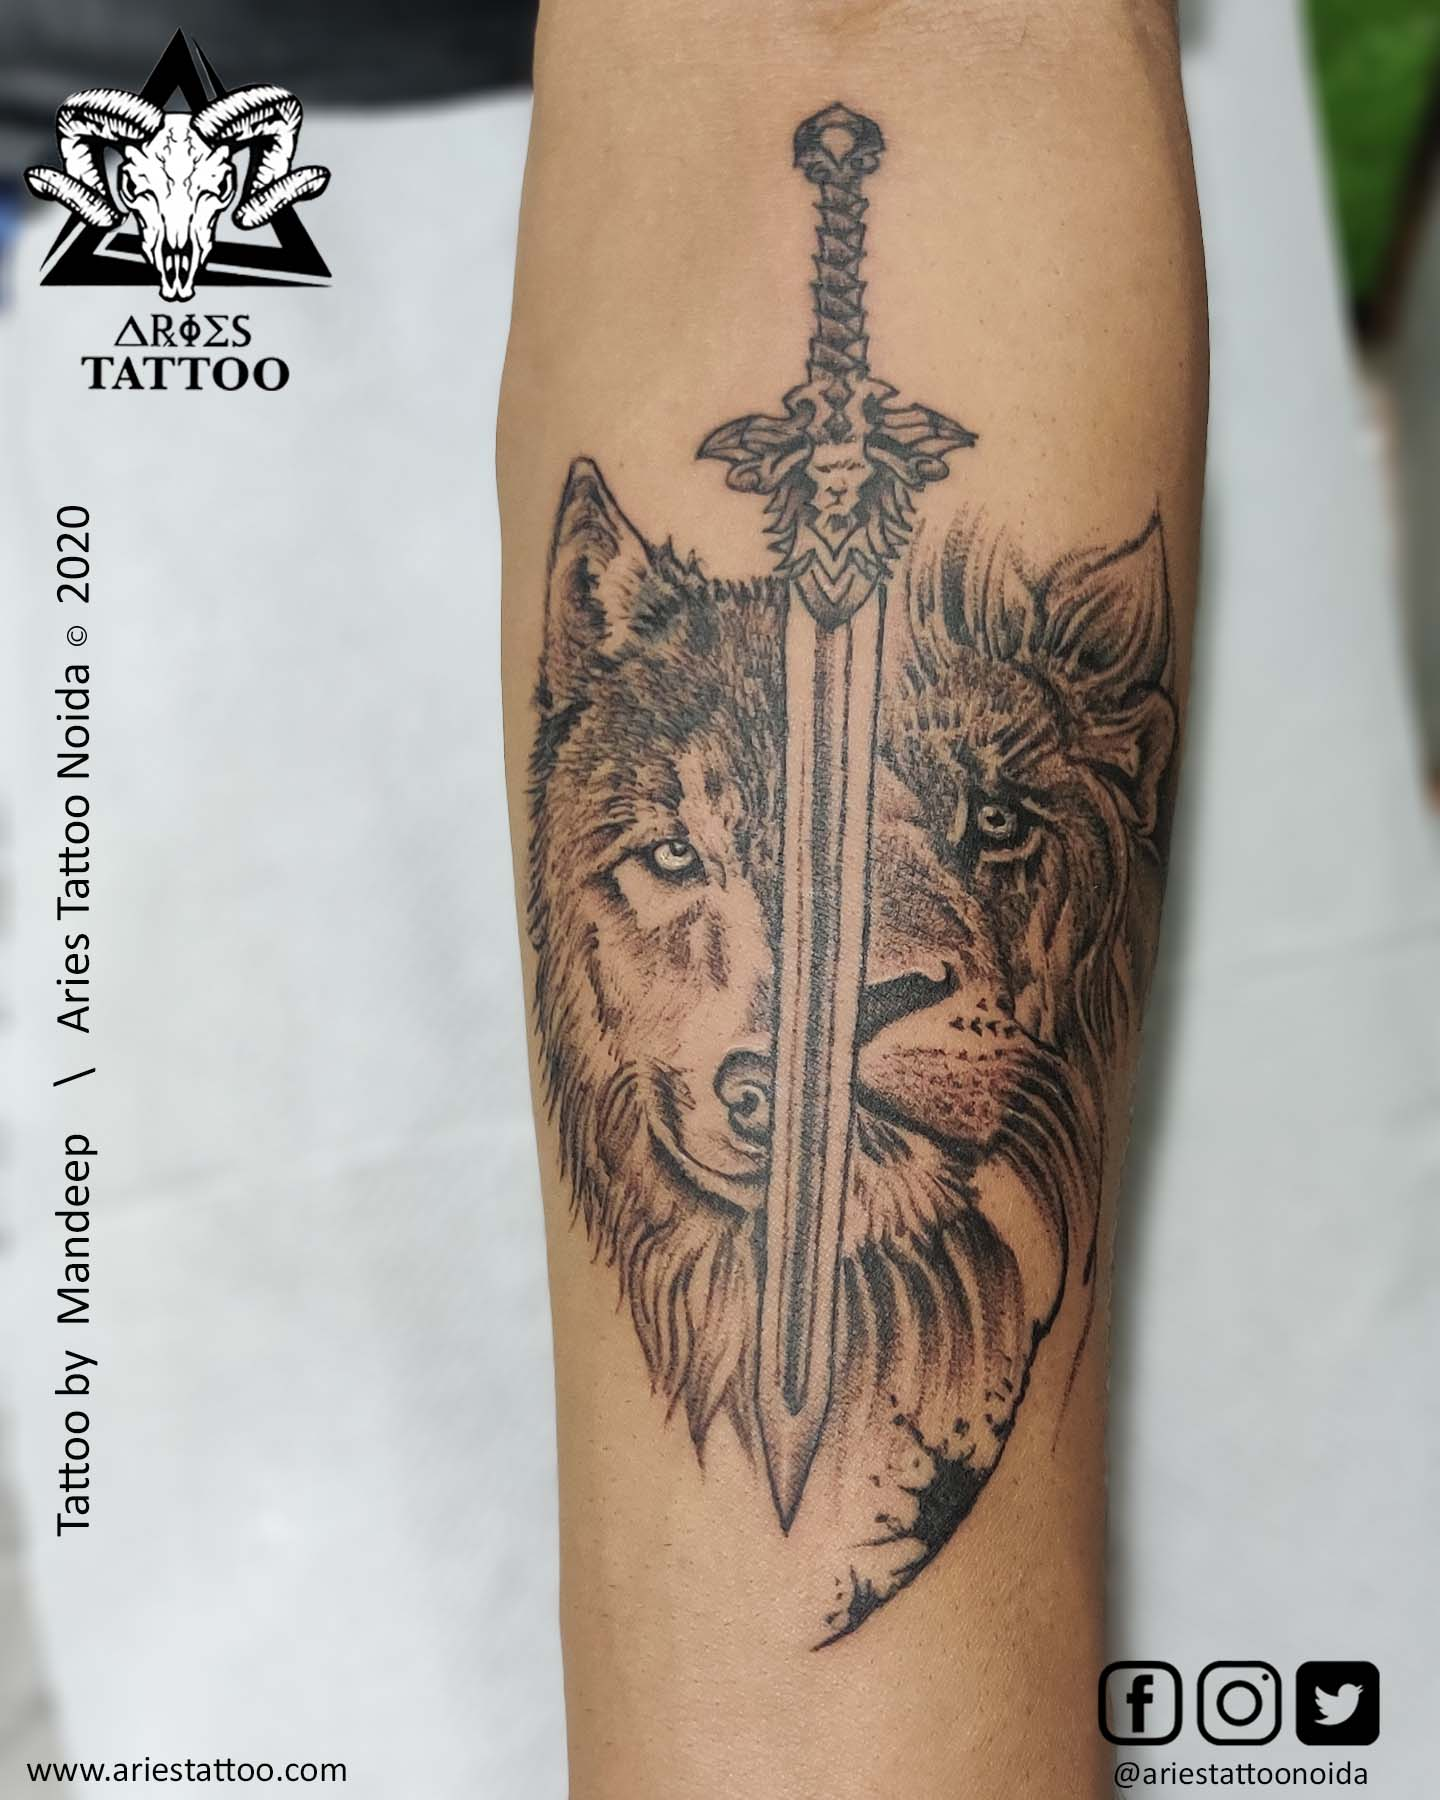 customised wolf and lion with sword tattoo_mandeep |Aries Tattoo Noida | Tattoo Shop and Studio In Noida